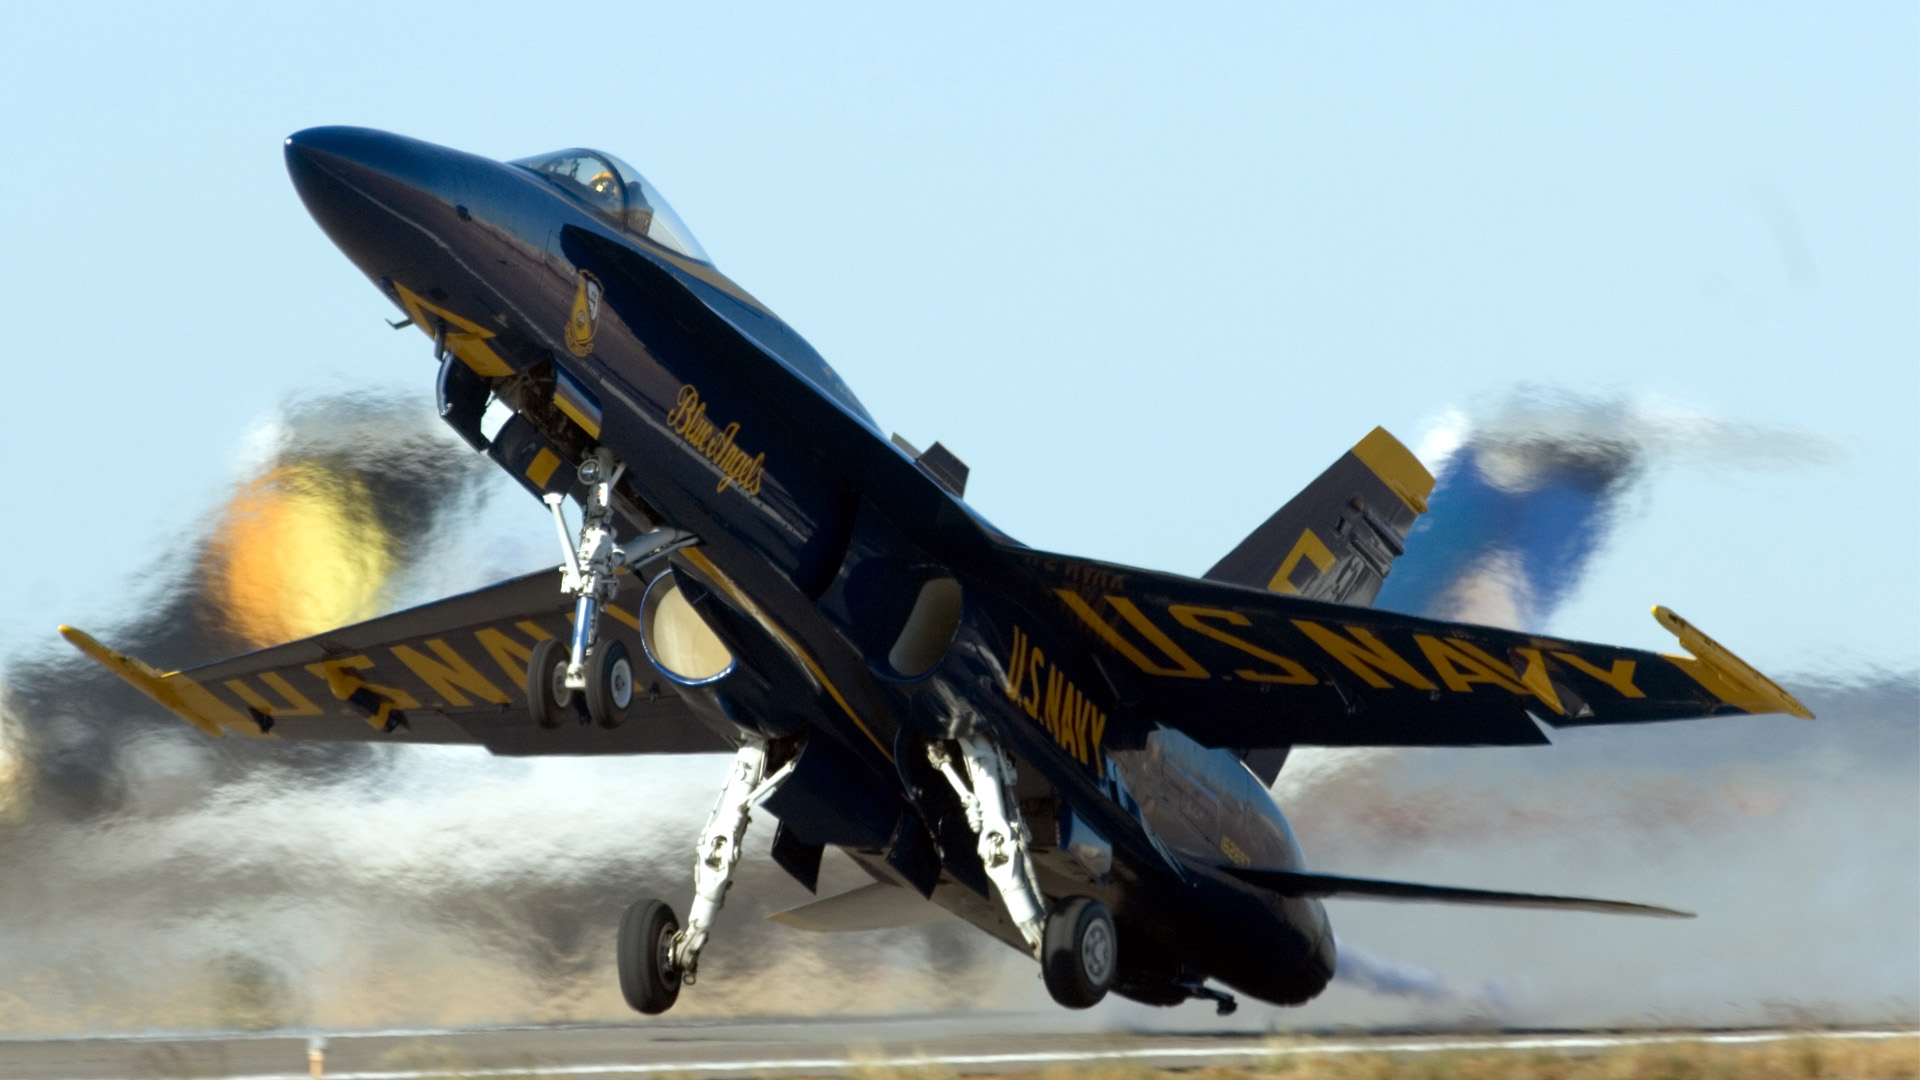 blue-angels-f-hornet-hd-1920%C3%971080-wallpaper-wpc9003067